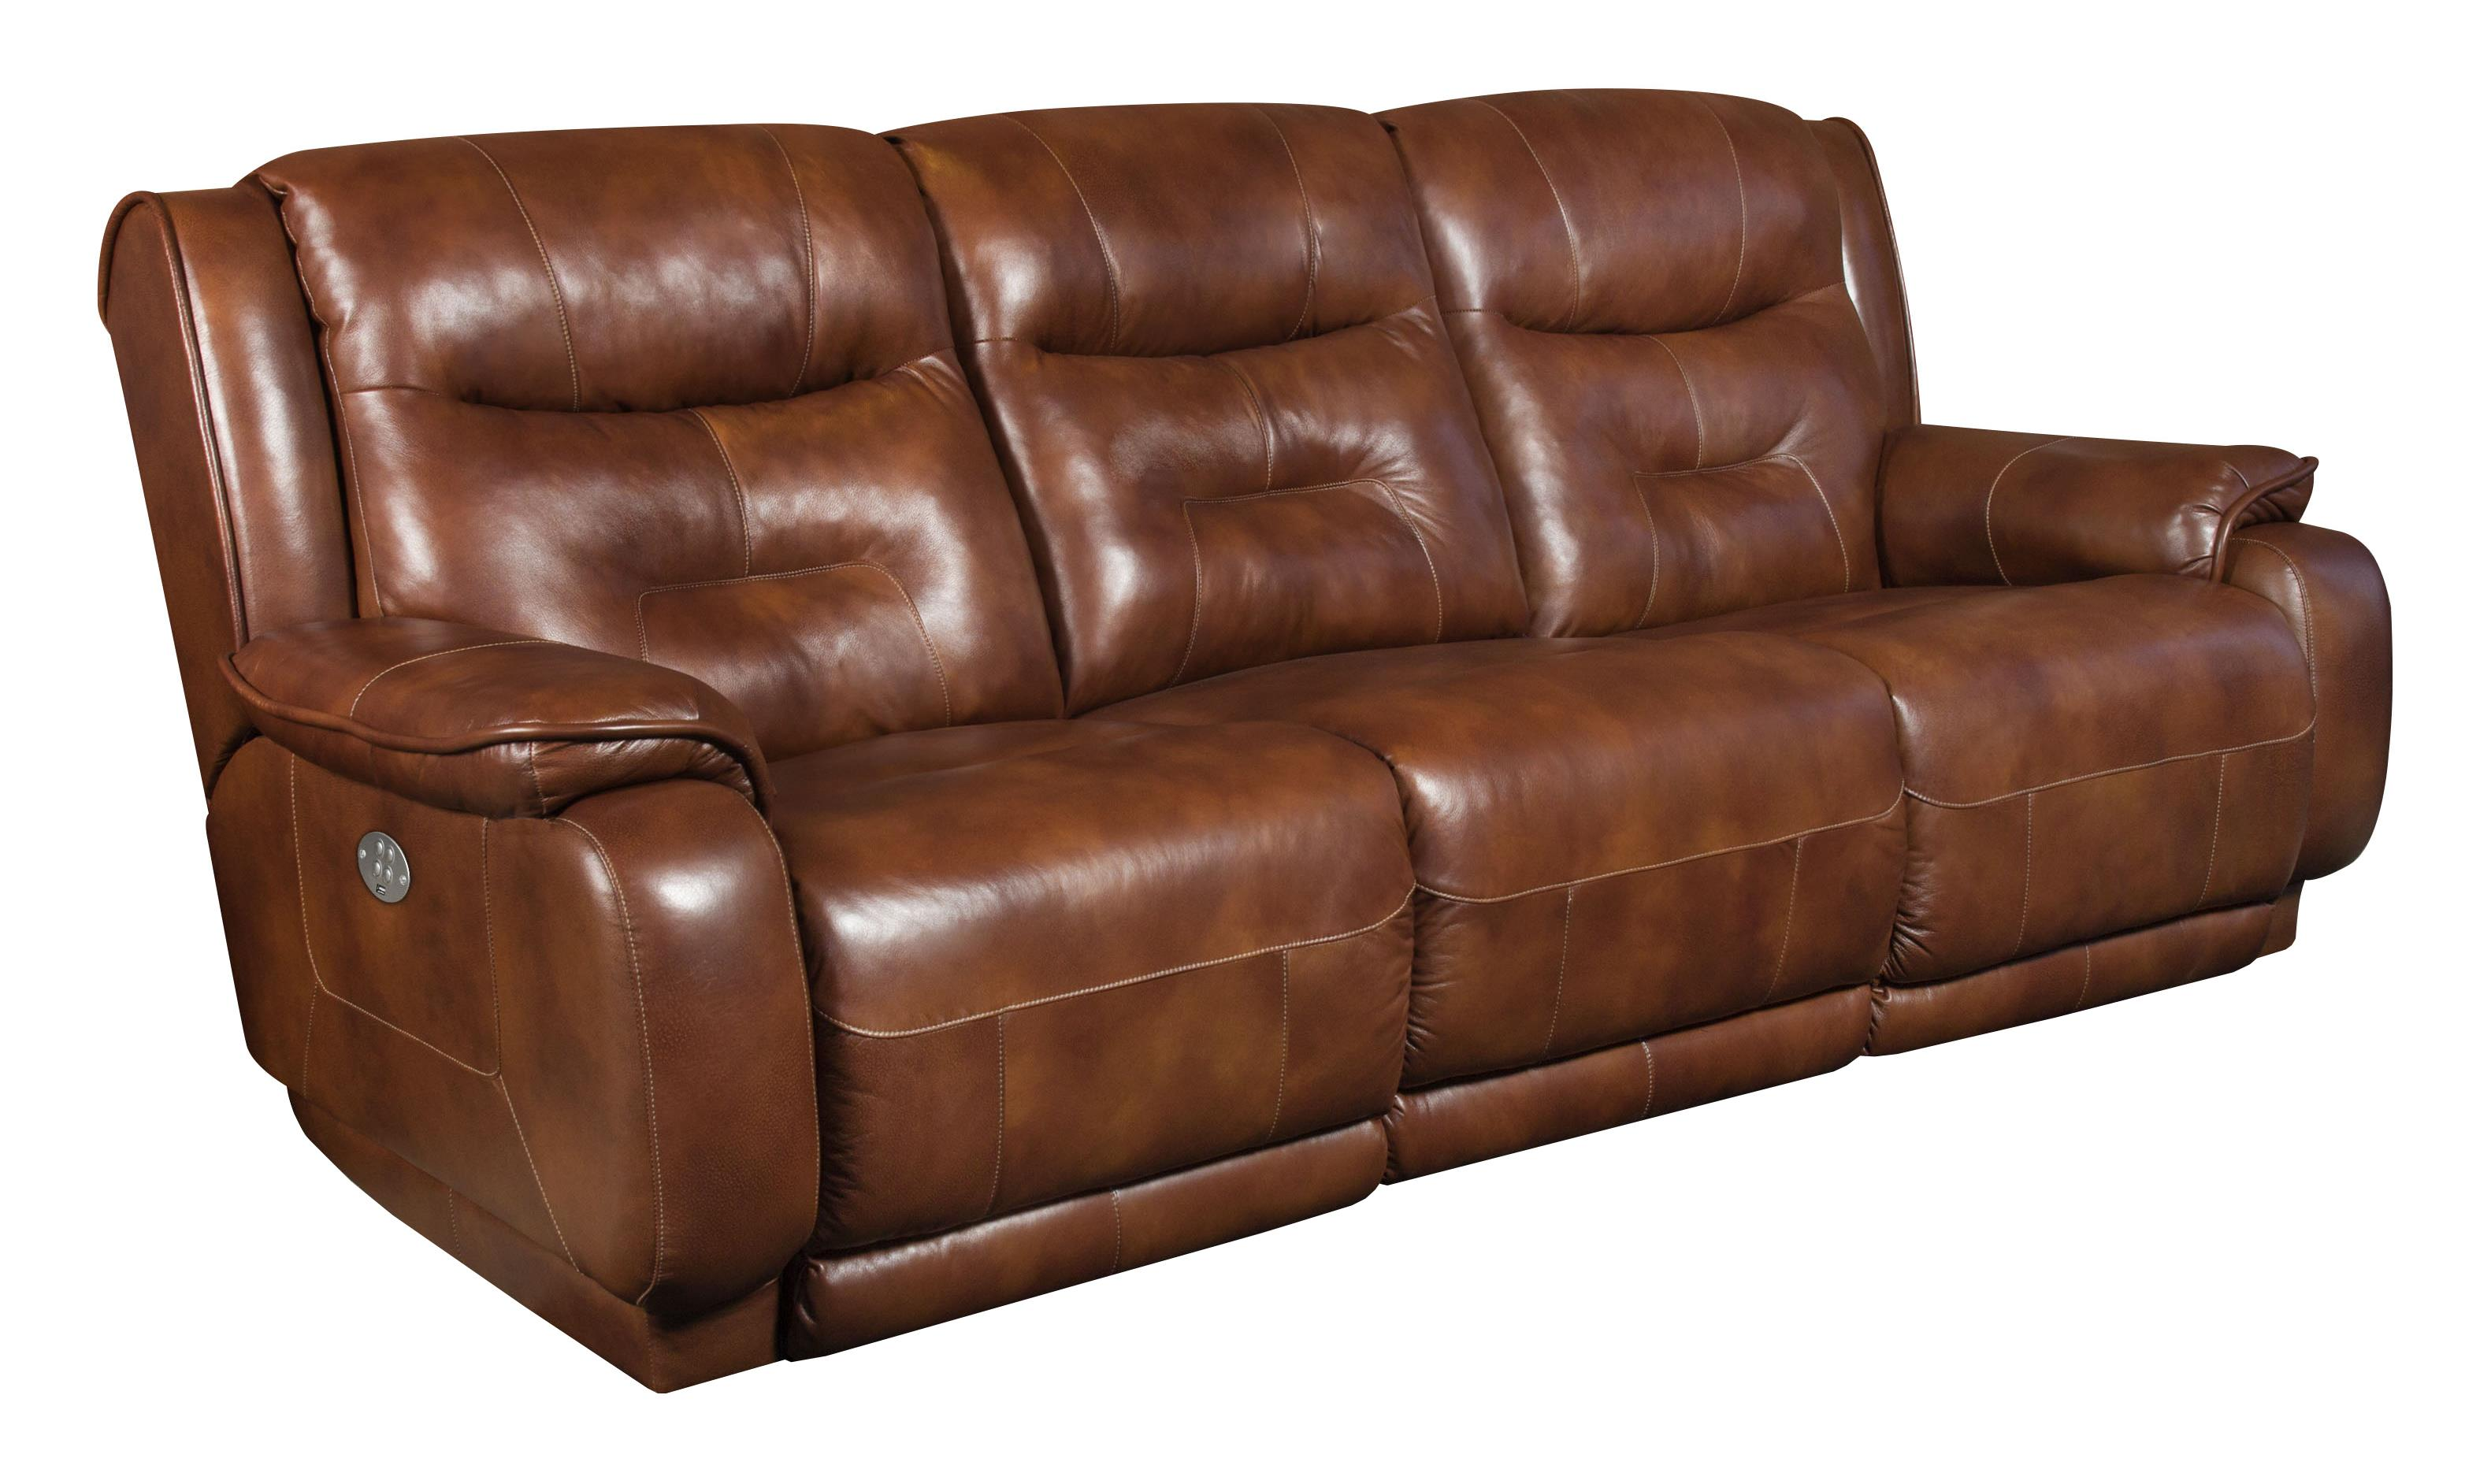 Southern Motion Crescent Double Reclining Sofa with Power Headrest - Item Number 874-61P  sc 1 st  Wayside Furniture & Southern Motion Crescent Double Reclining Sofa with Power Headrest ... islam-shia.org